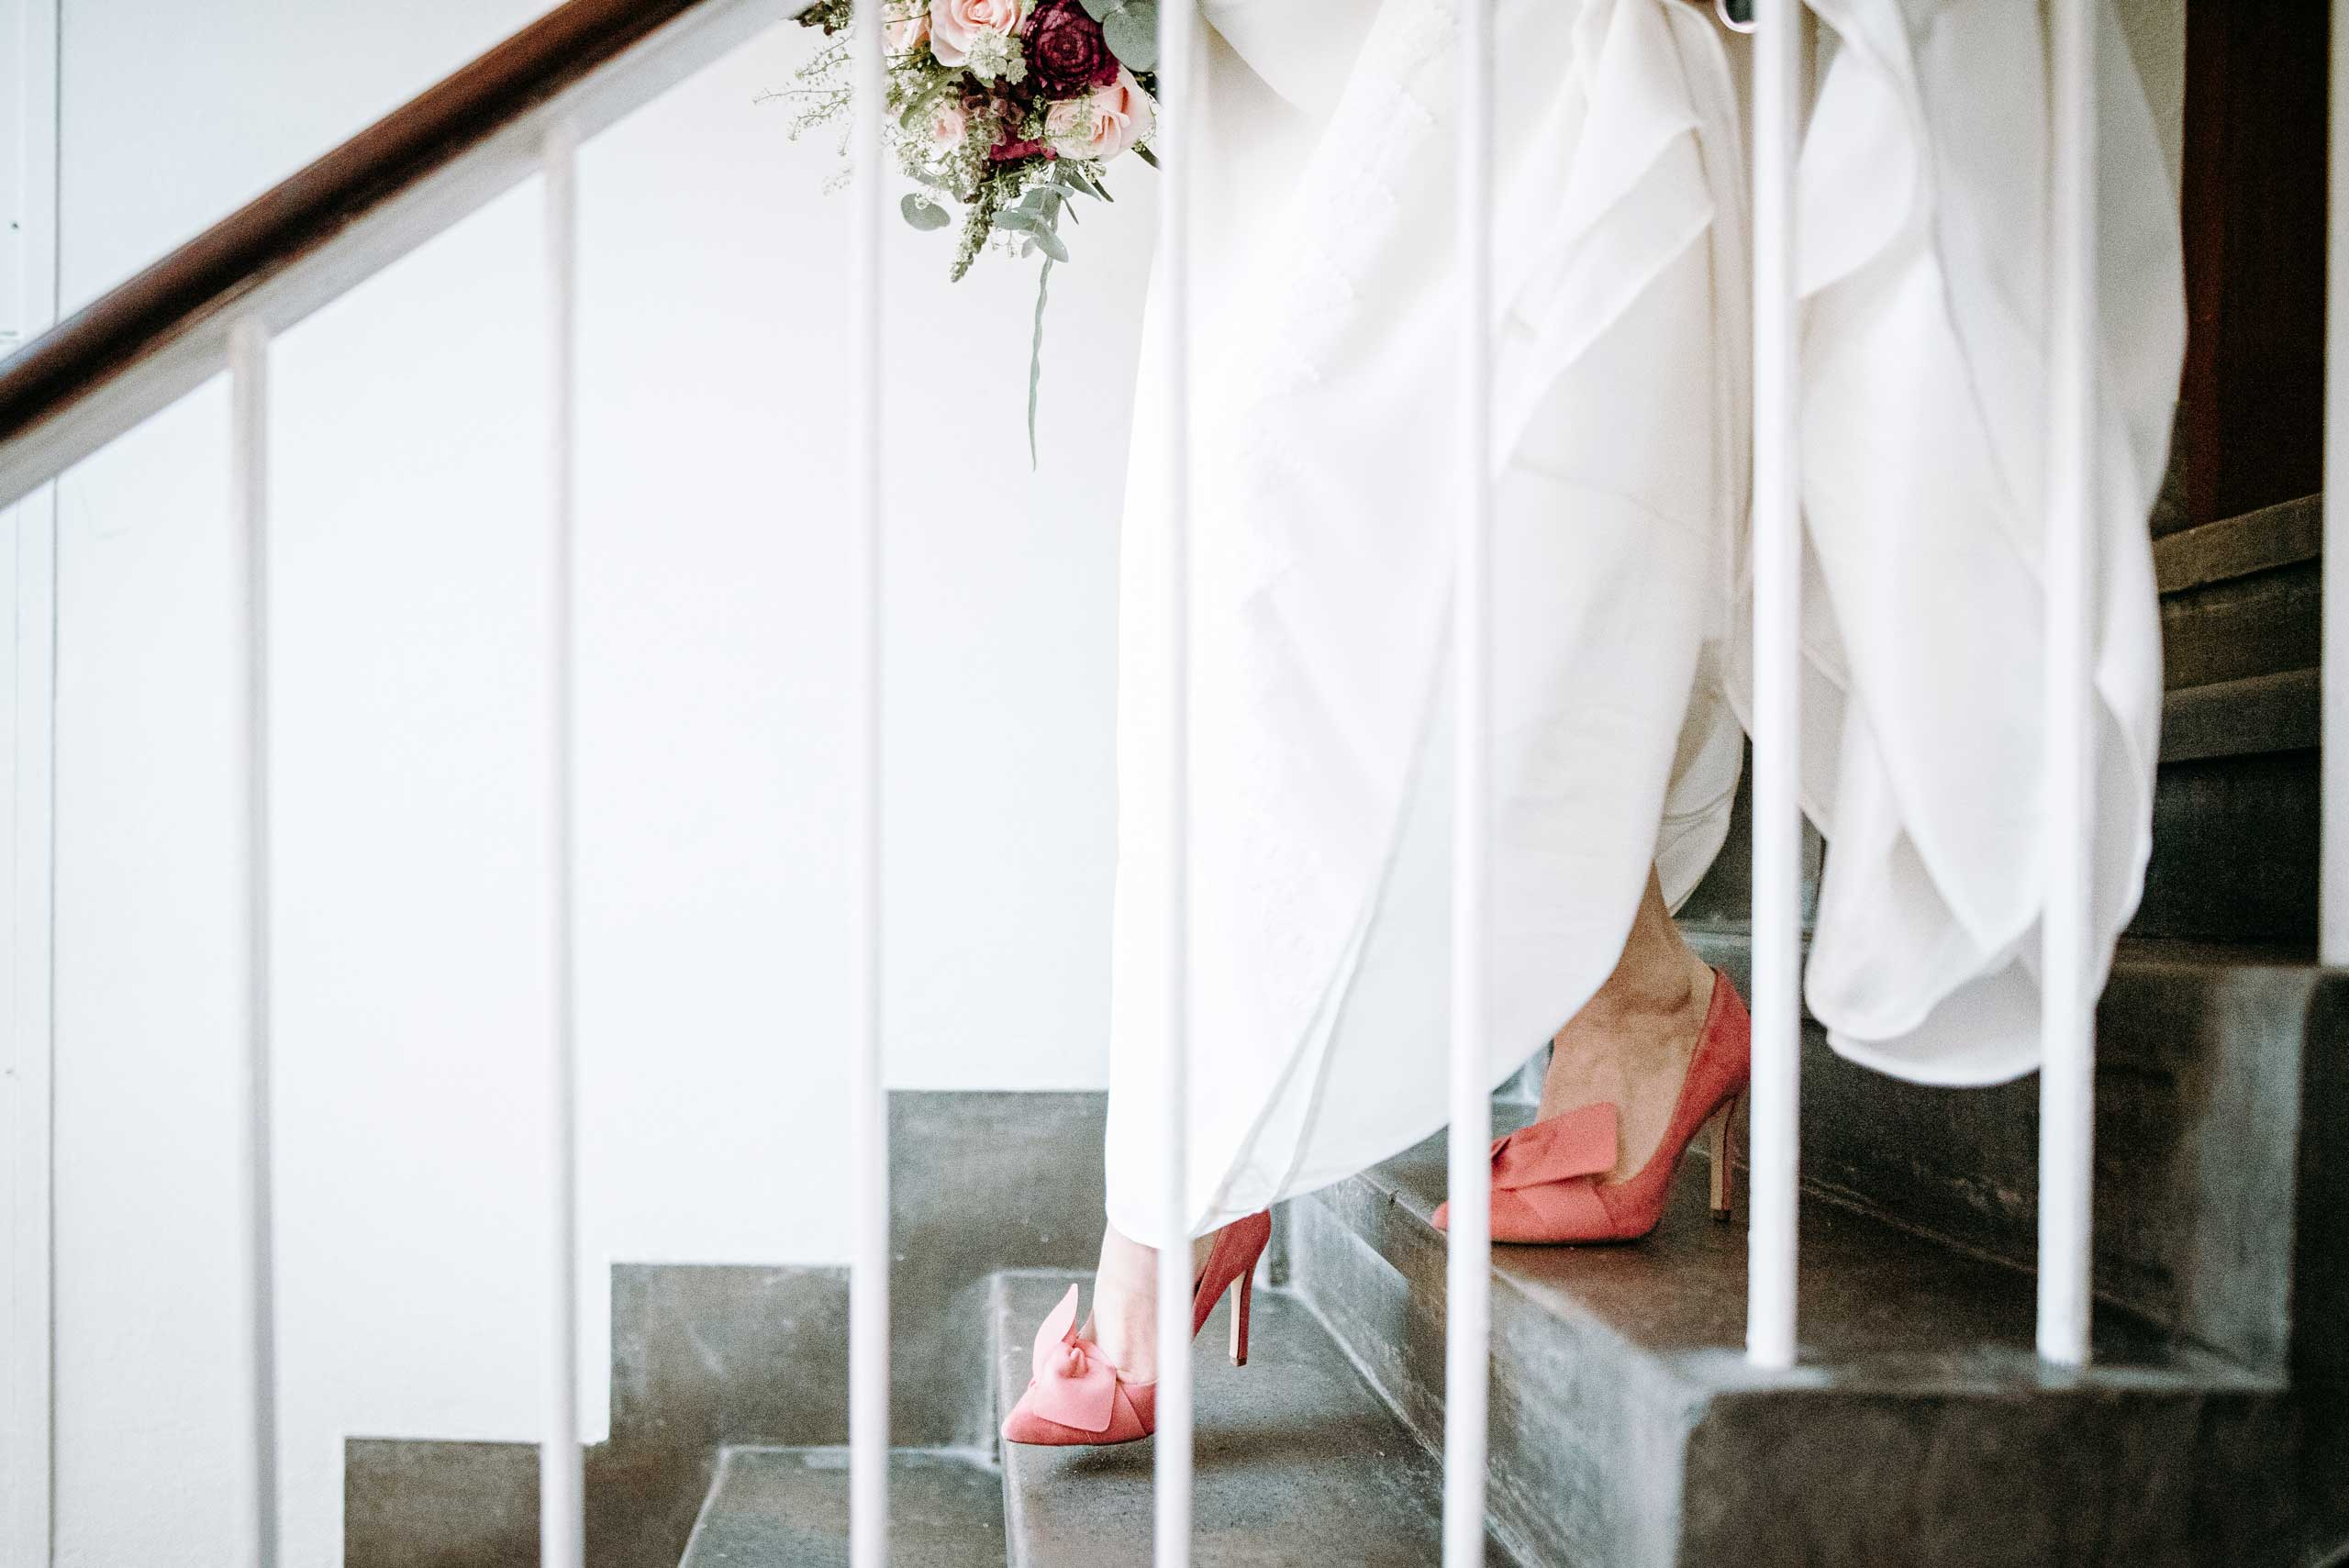 daisy walking down the stairs in her pink wedding shoes